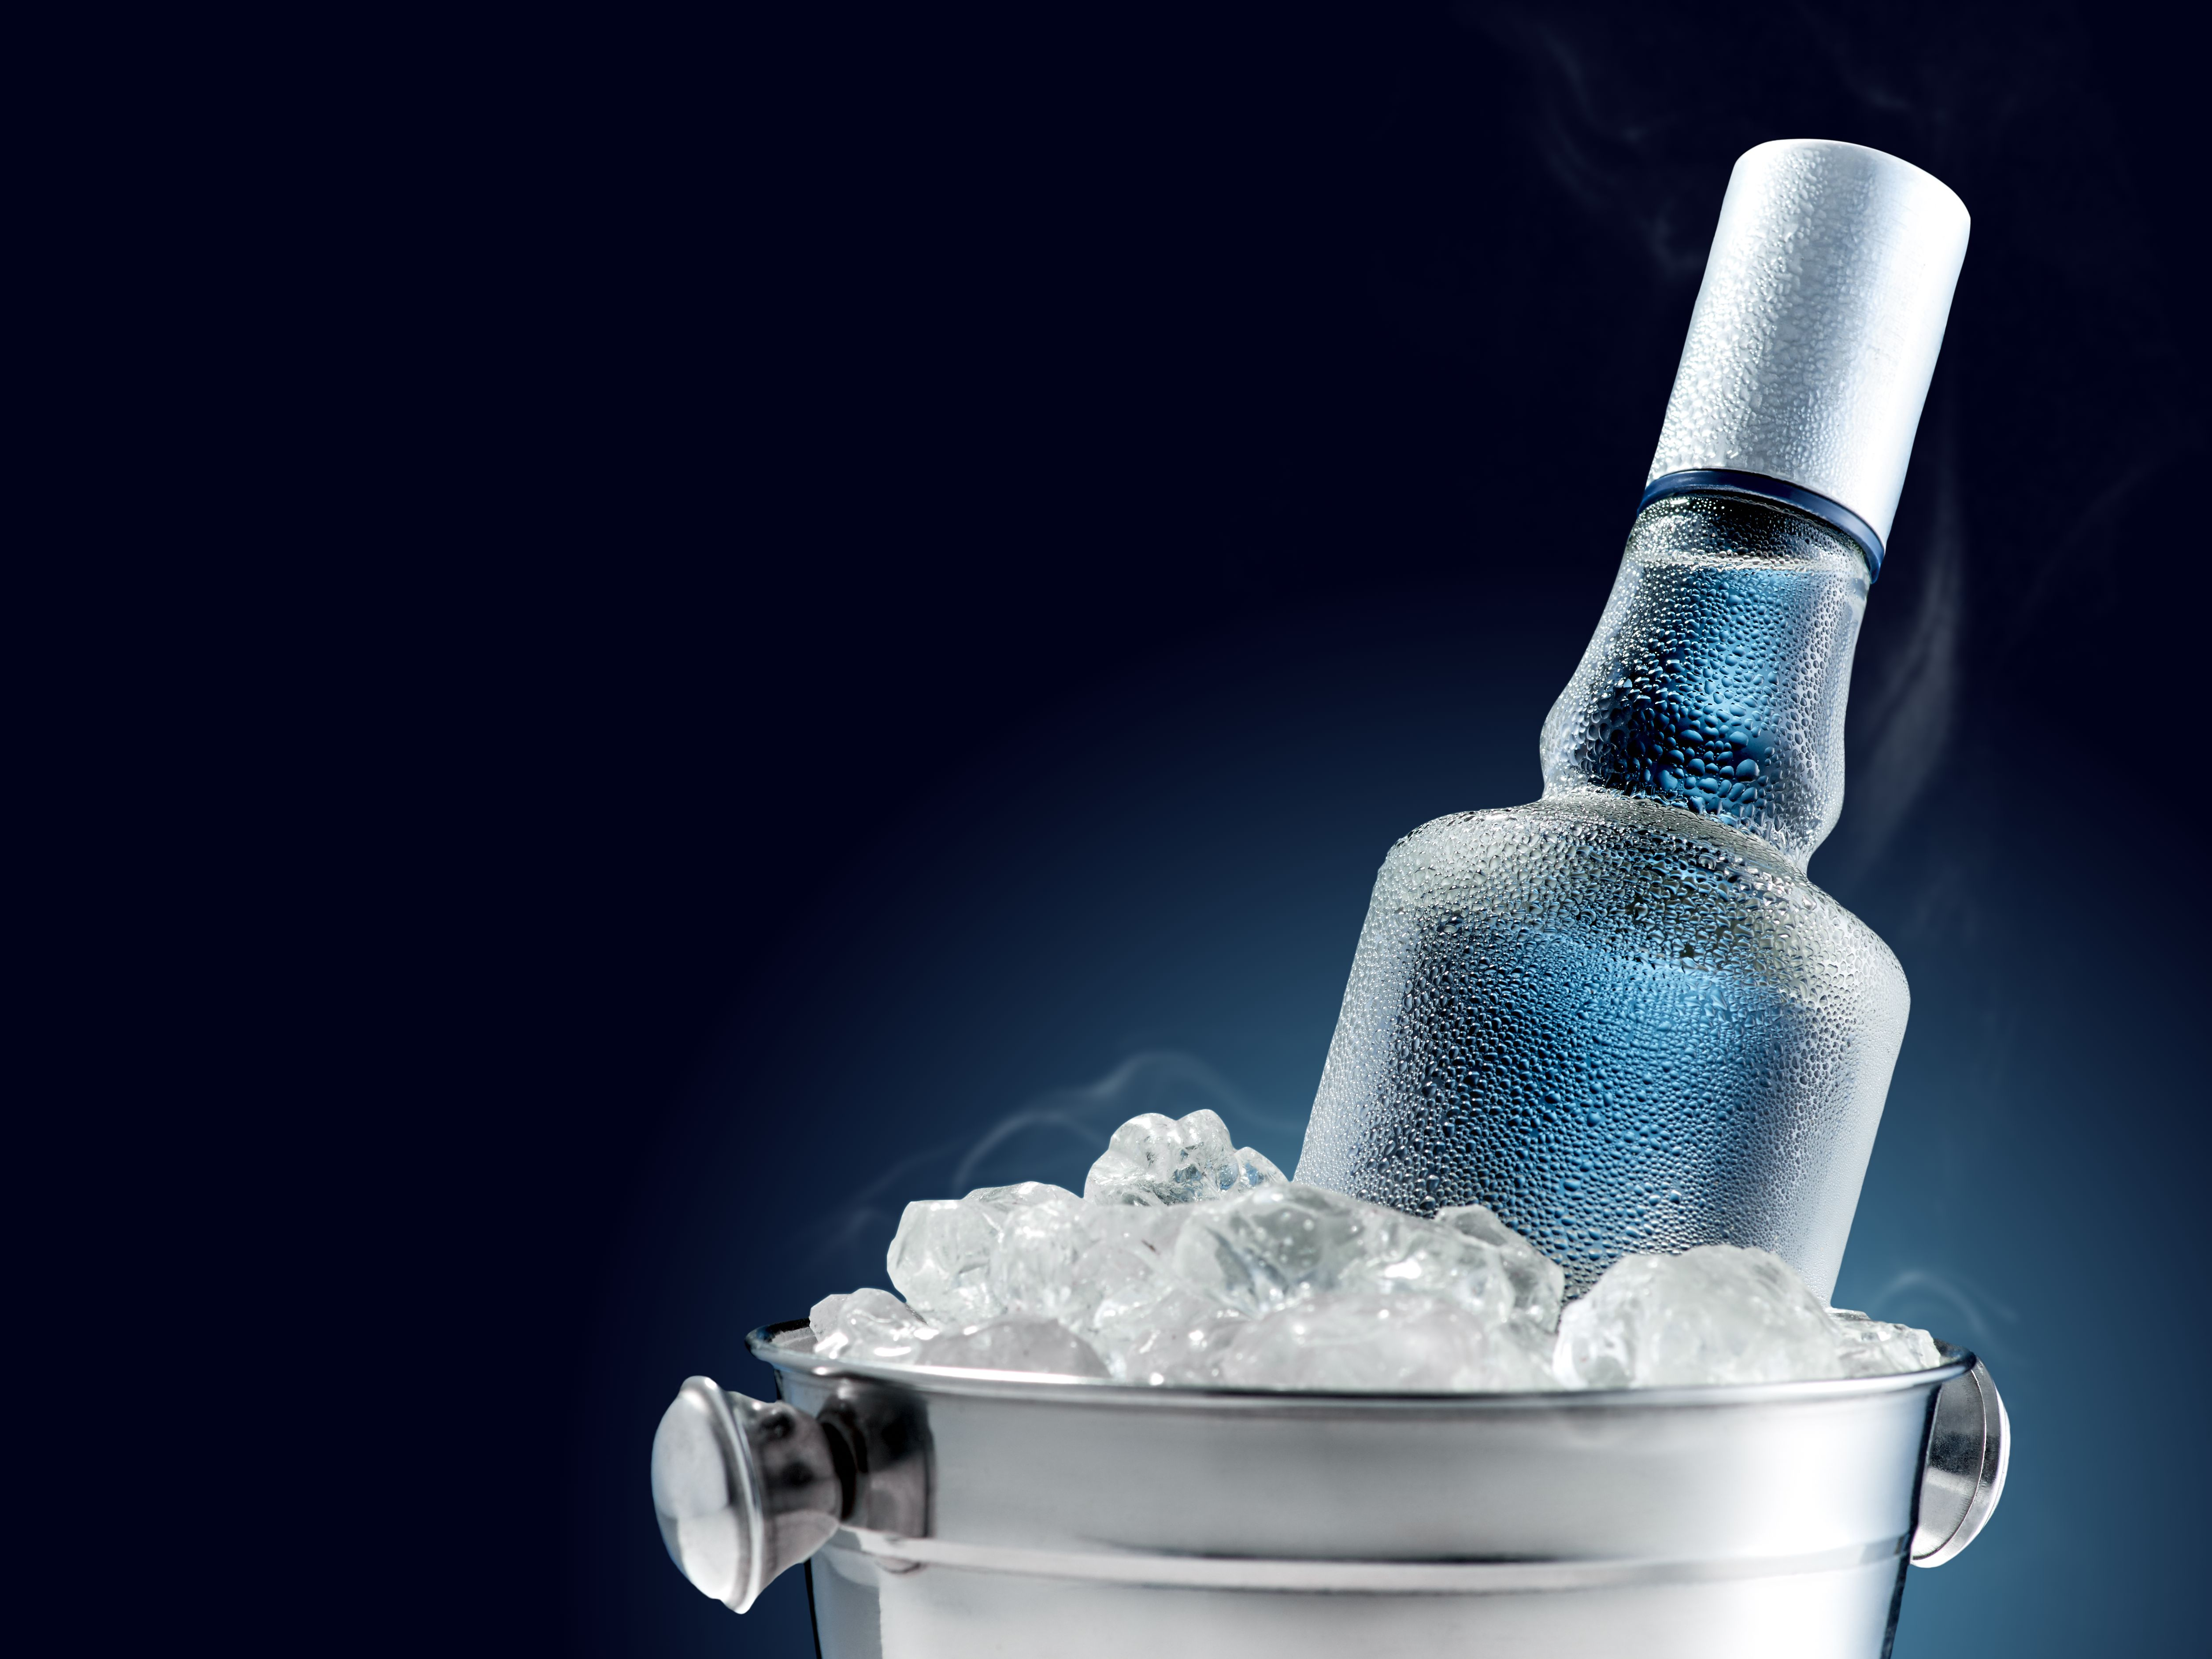 Why Doesn't Vodka Freeze in the Freezer?